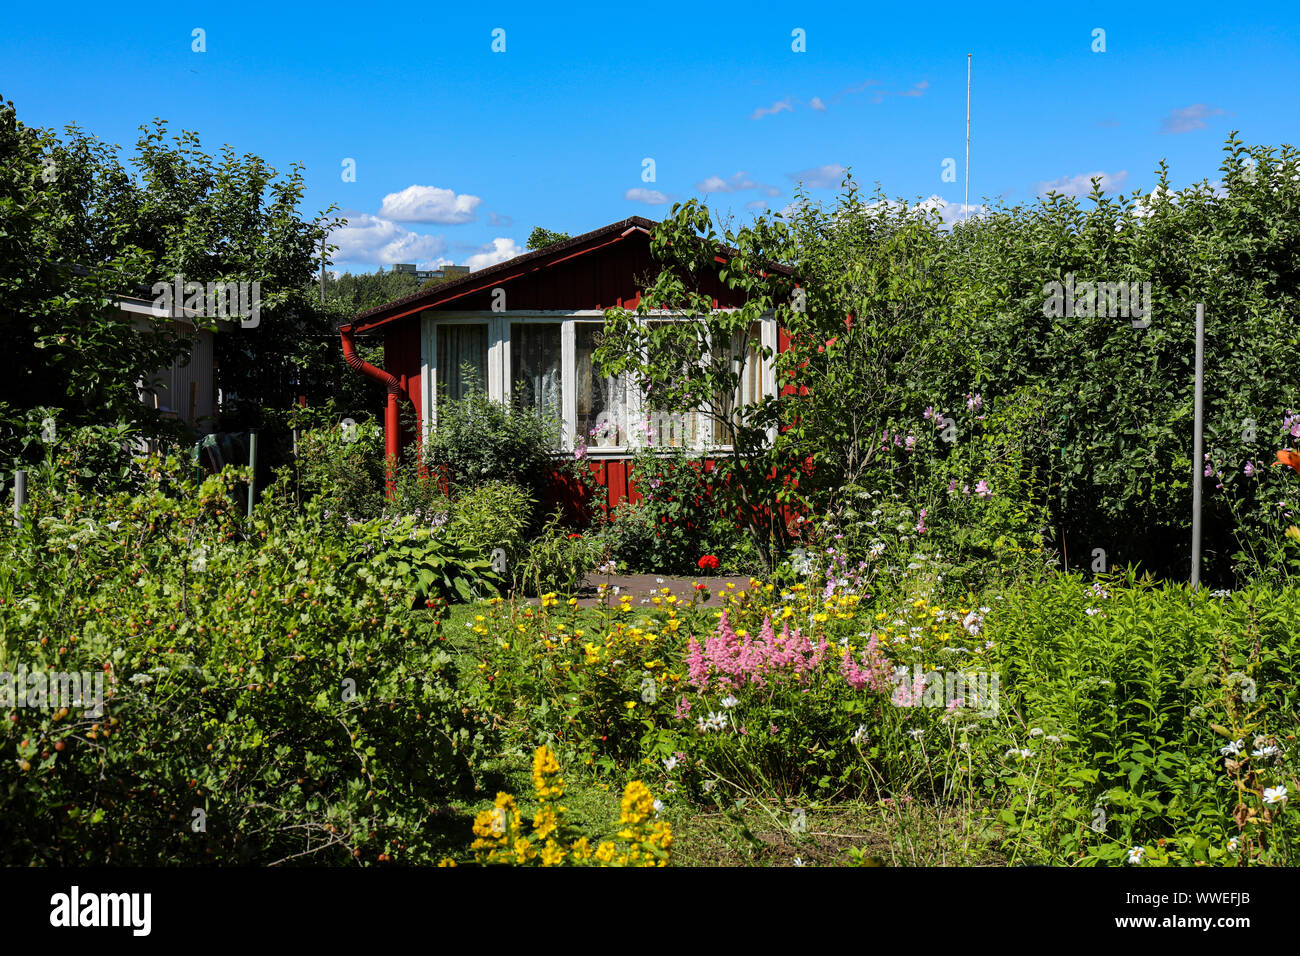 red-allotment-garden-hut-in-helsinki-fin